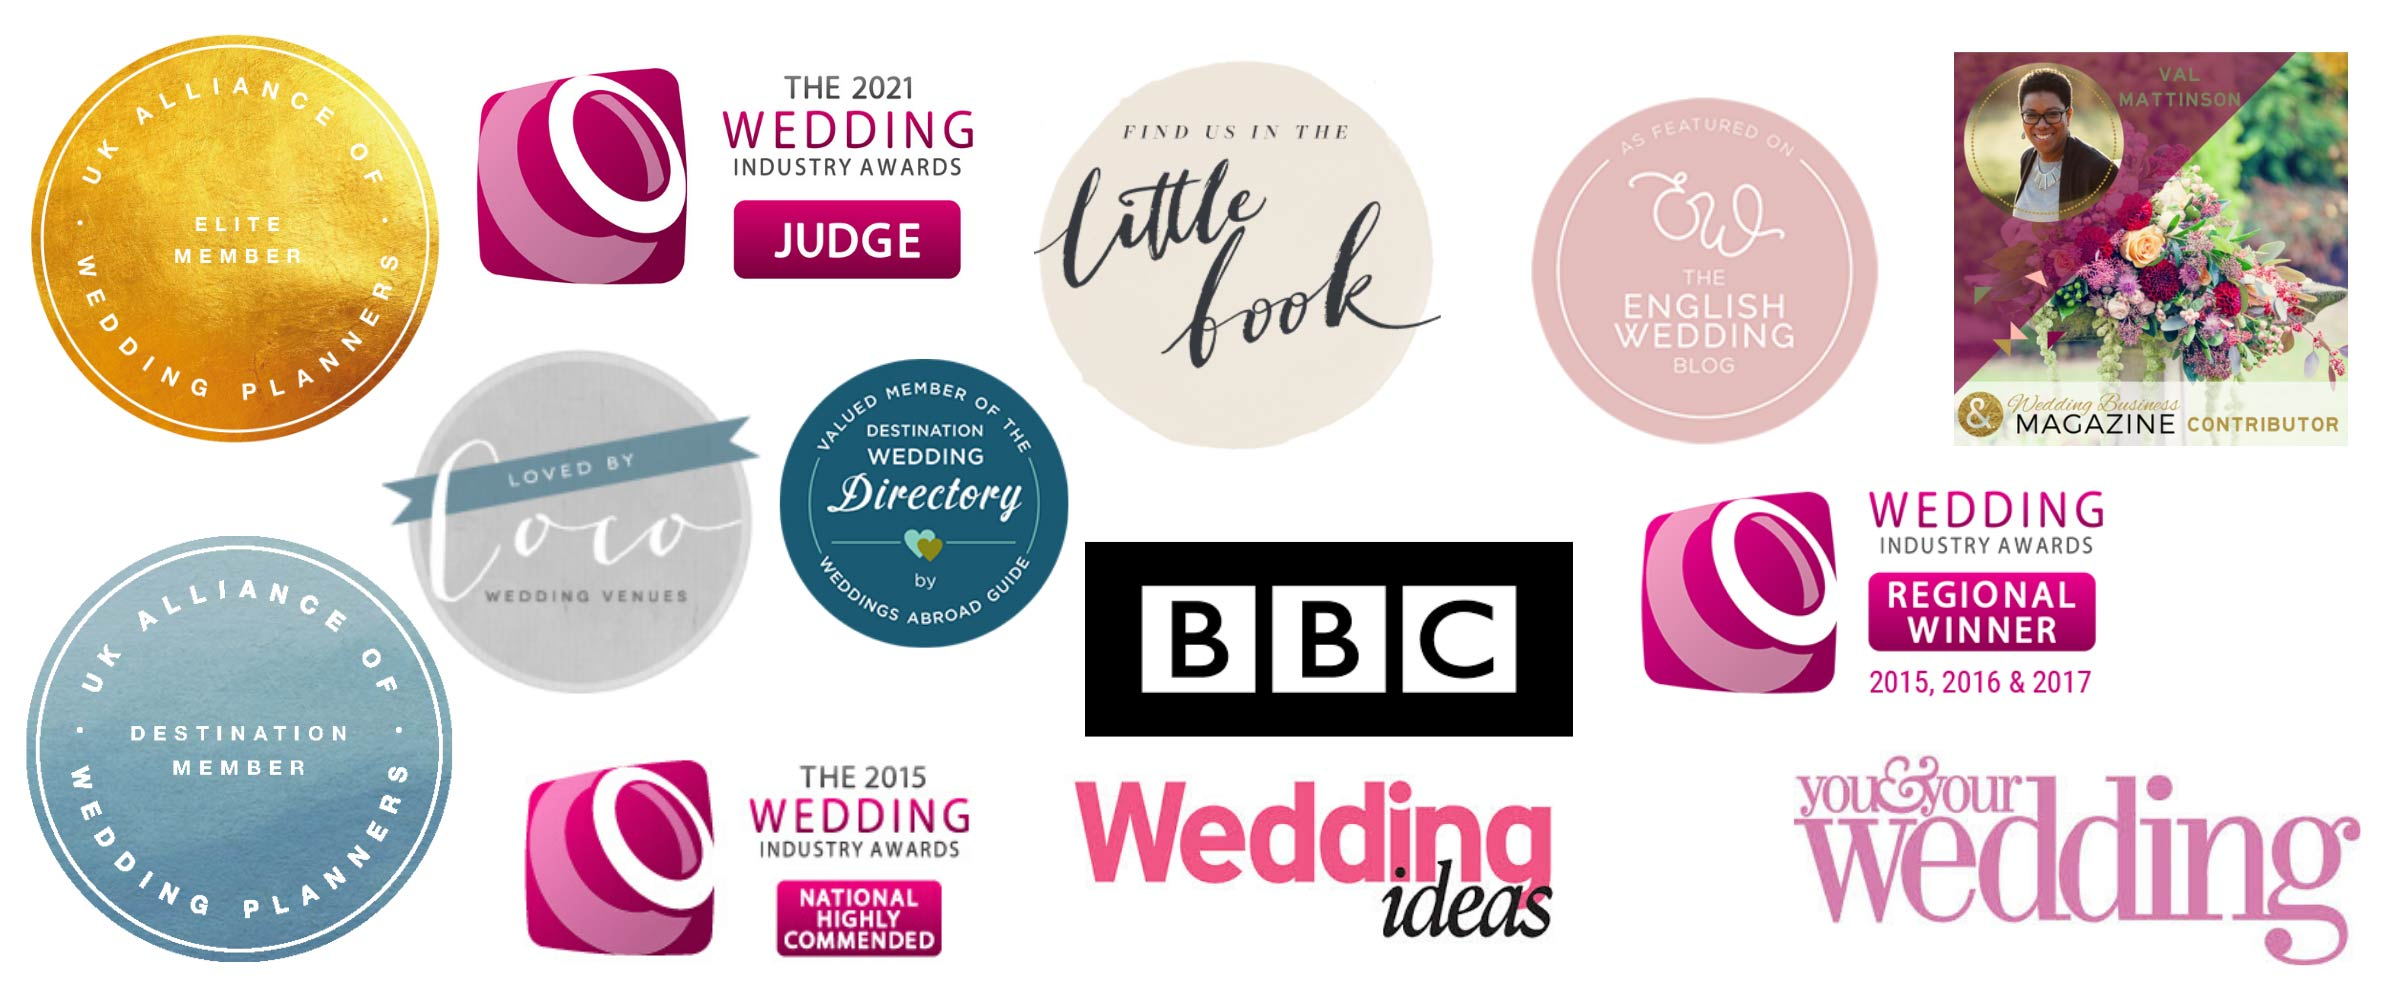 Wedding Planning, Initial Consultation and Party & Event Planning